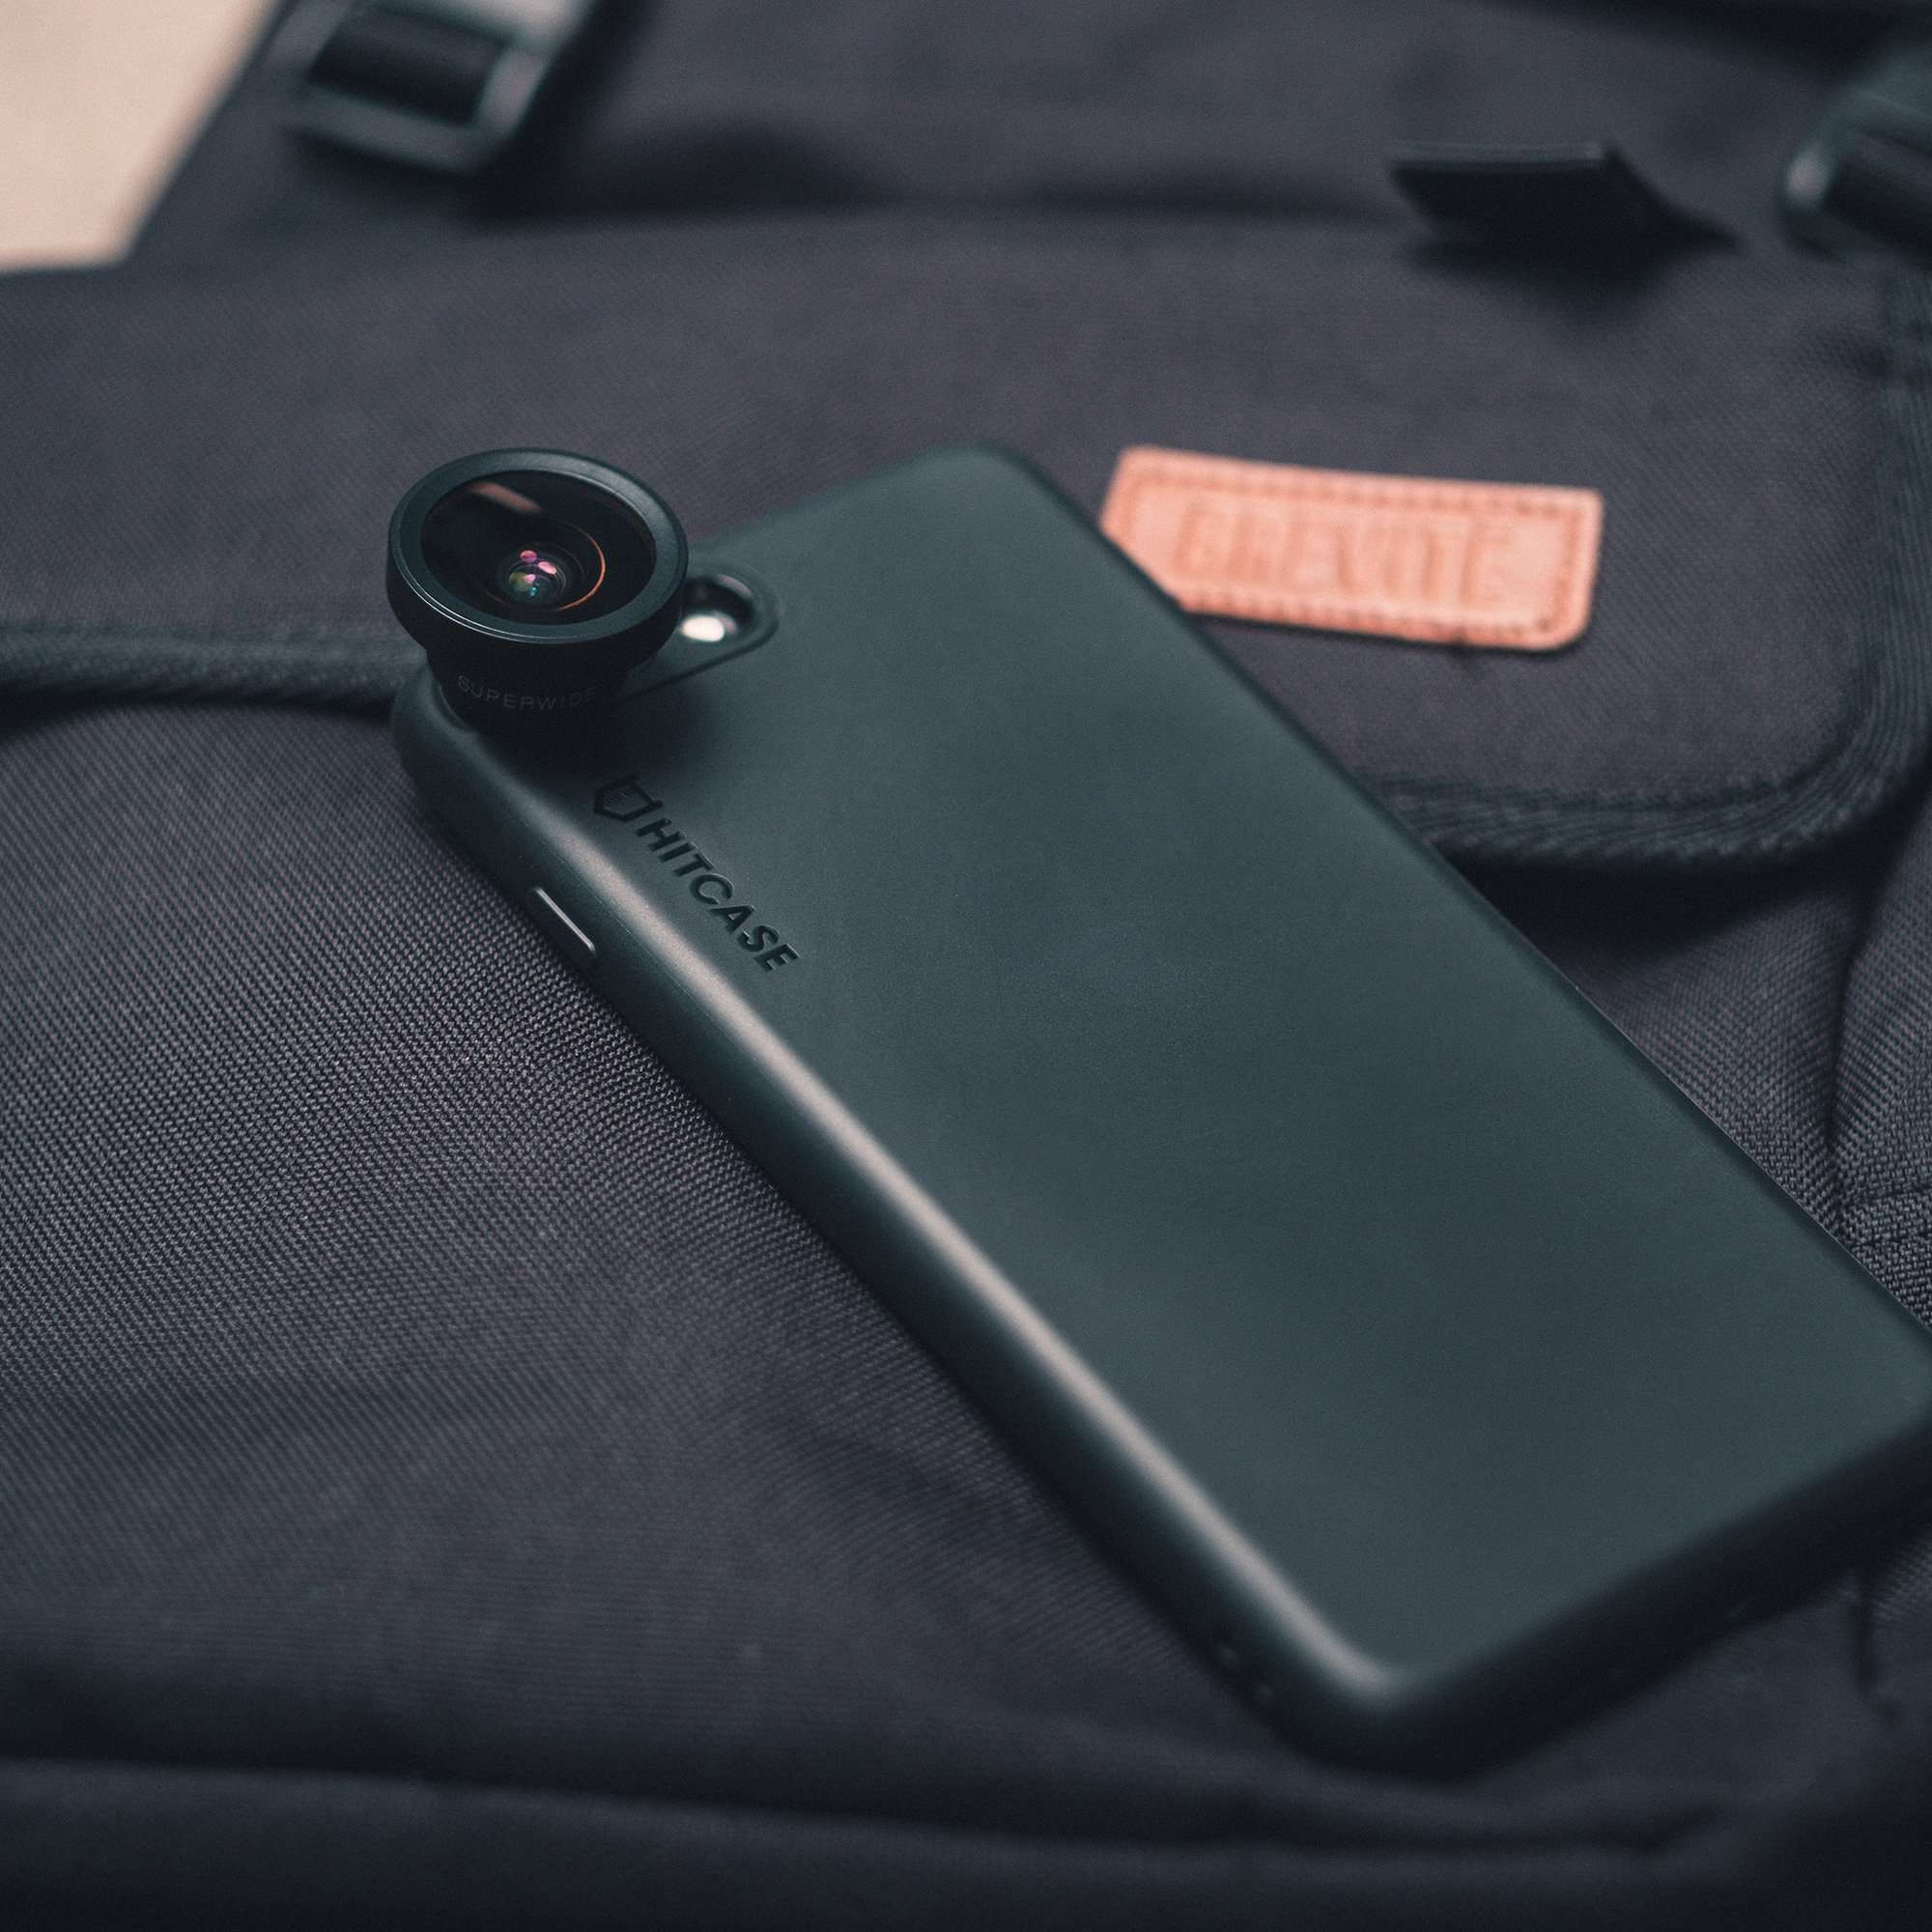 info for da393 697ab Hitcase CRIO for iPhone X/Xs